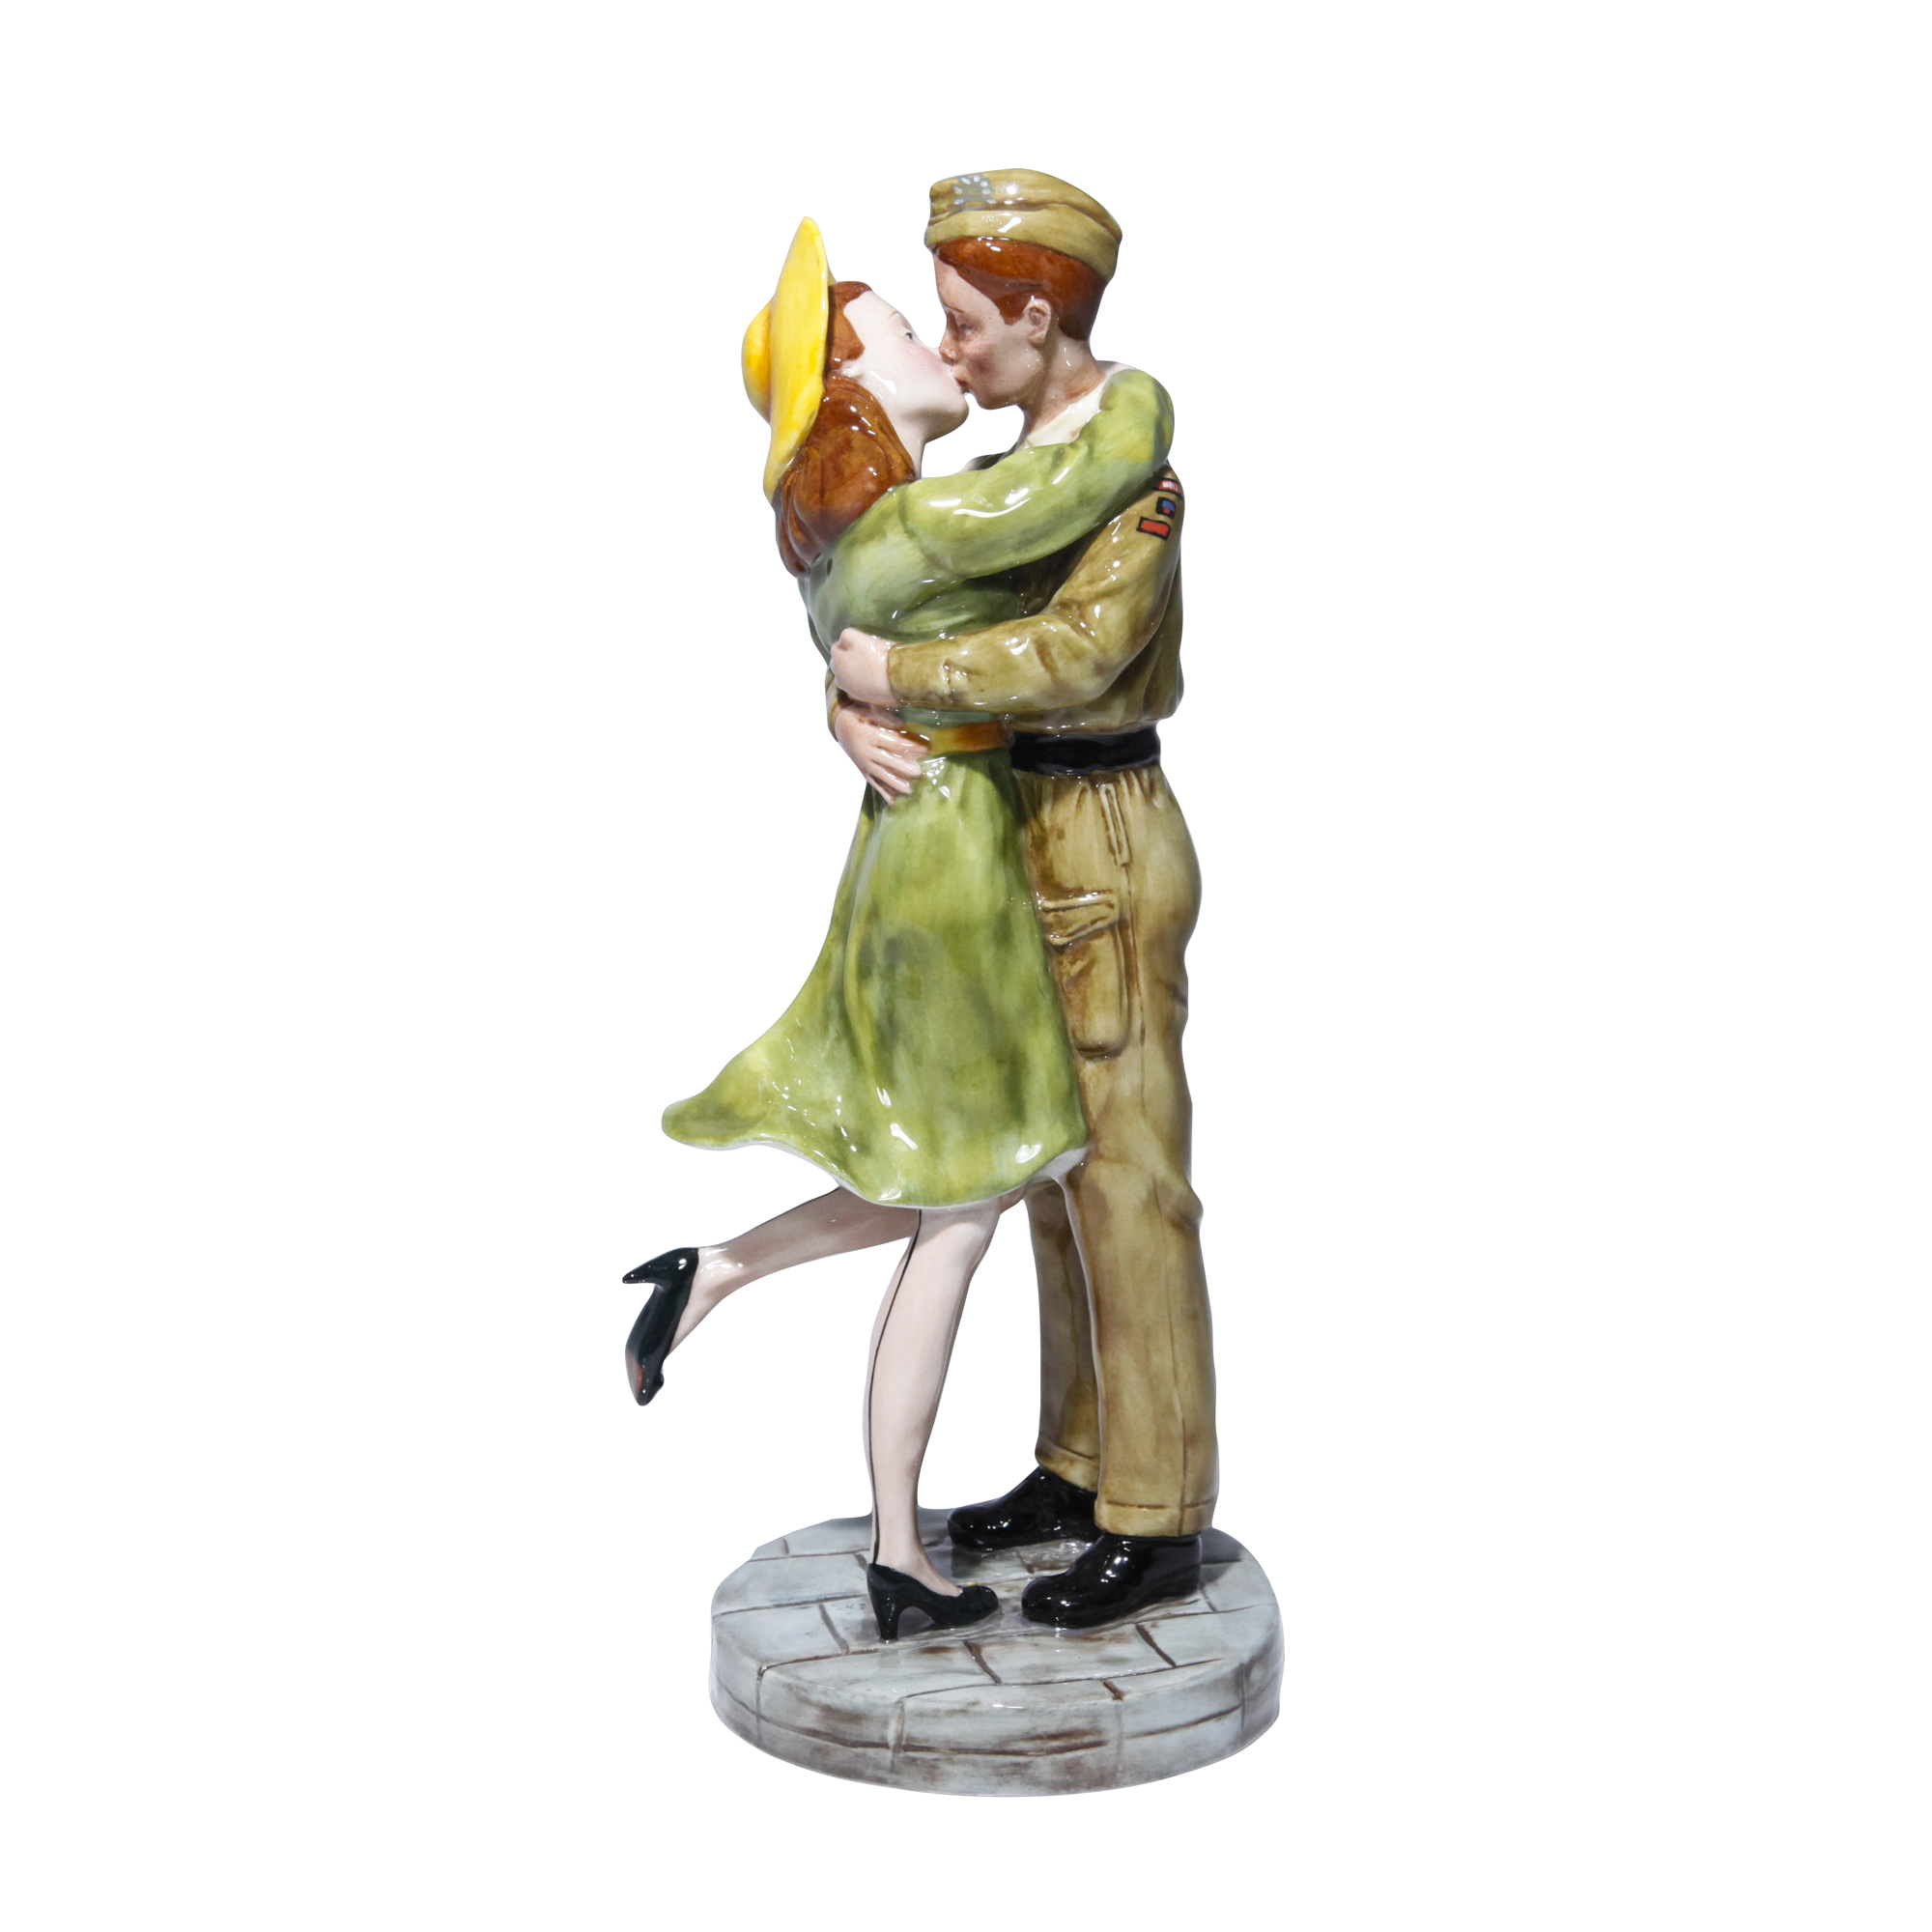 Hero Returns HN4698 Royal Doulton Figurine